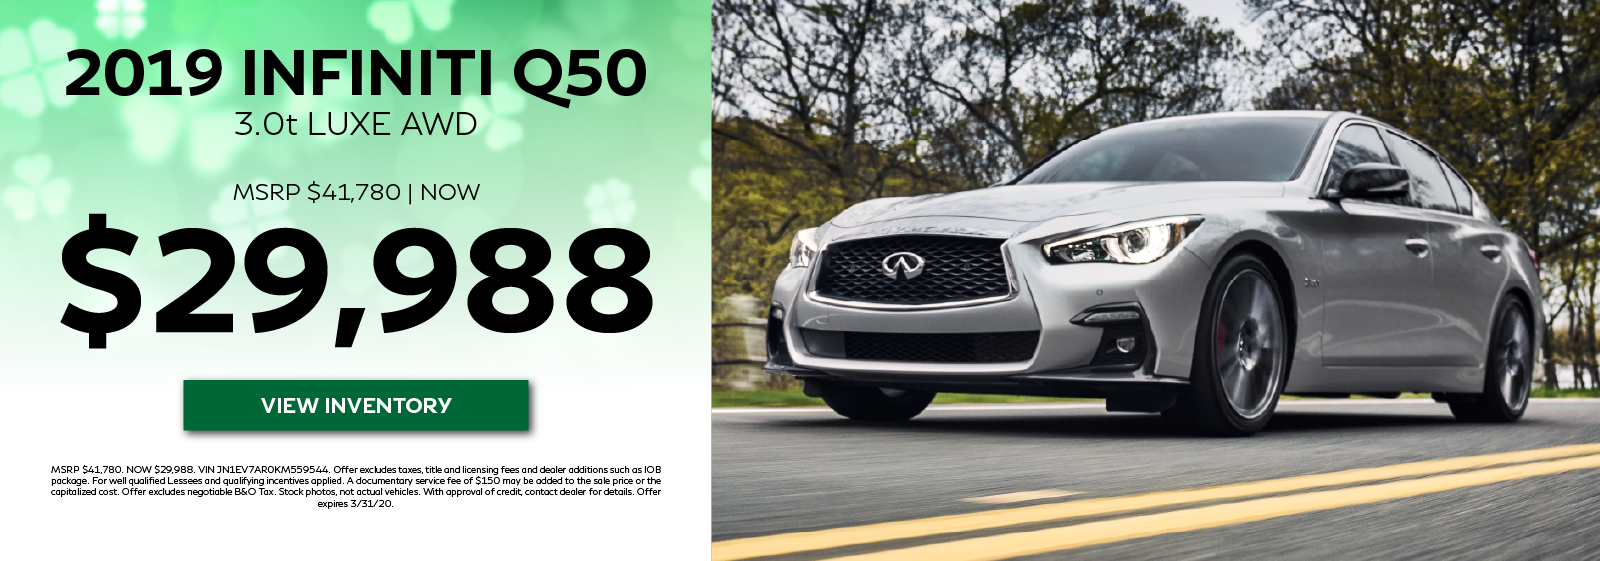 2019 Q50 3.0t LUXE - MSRP $42,330. Now $30,990. View Inventory